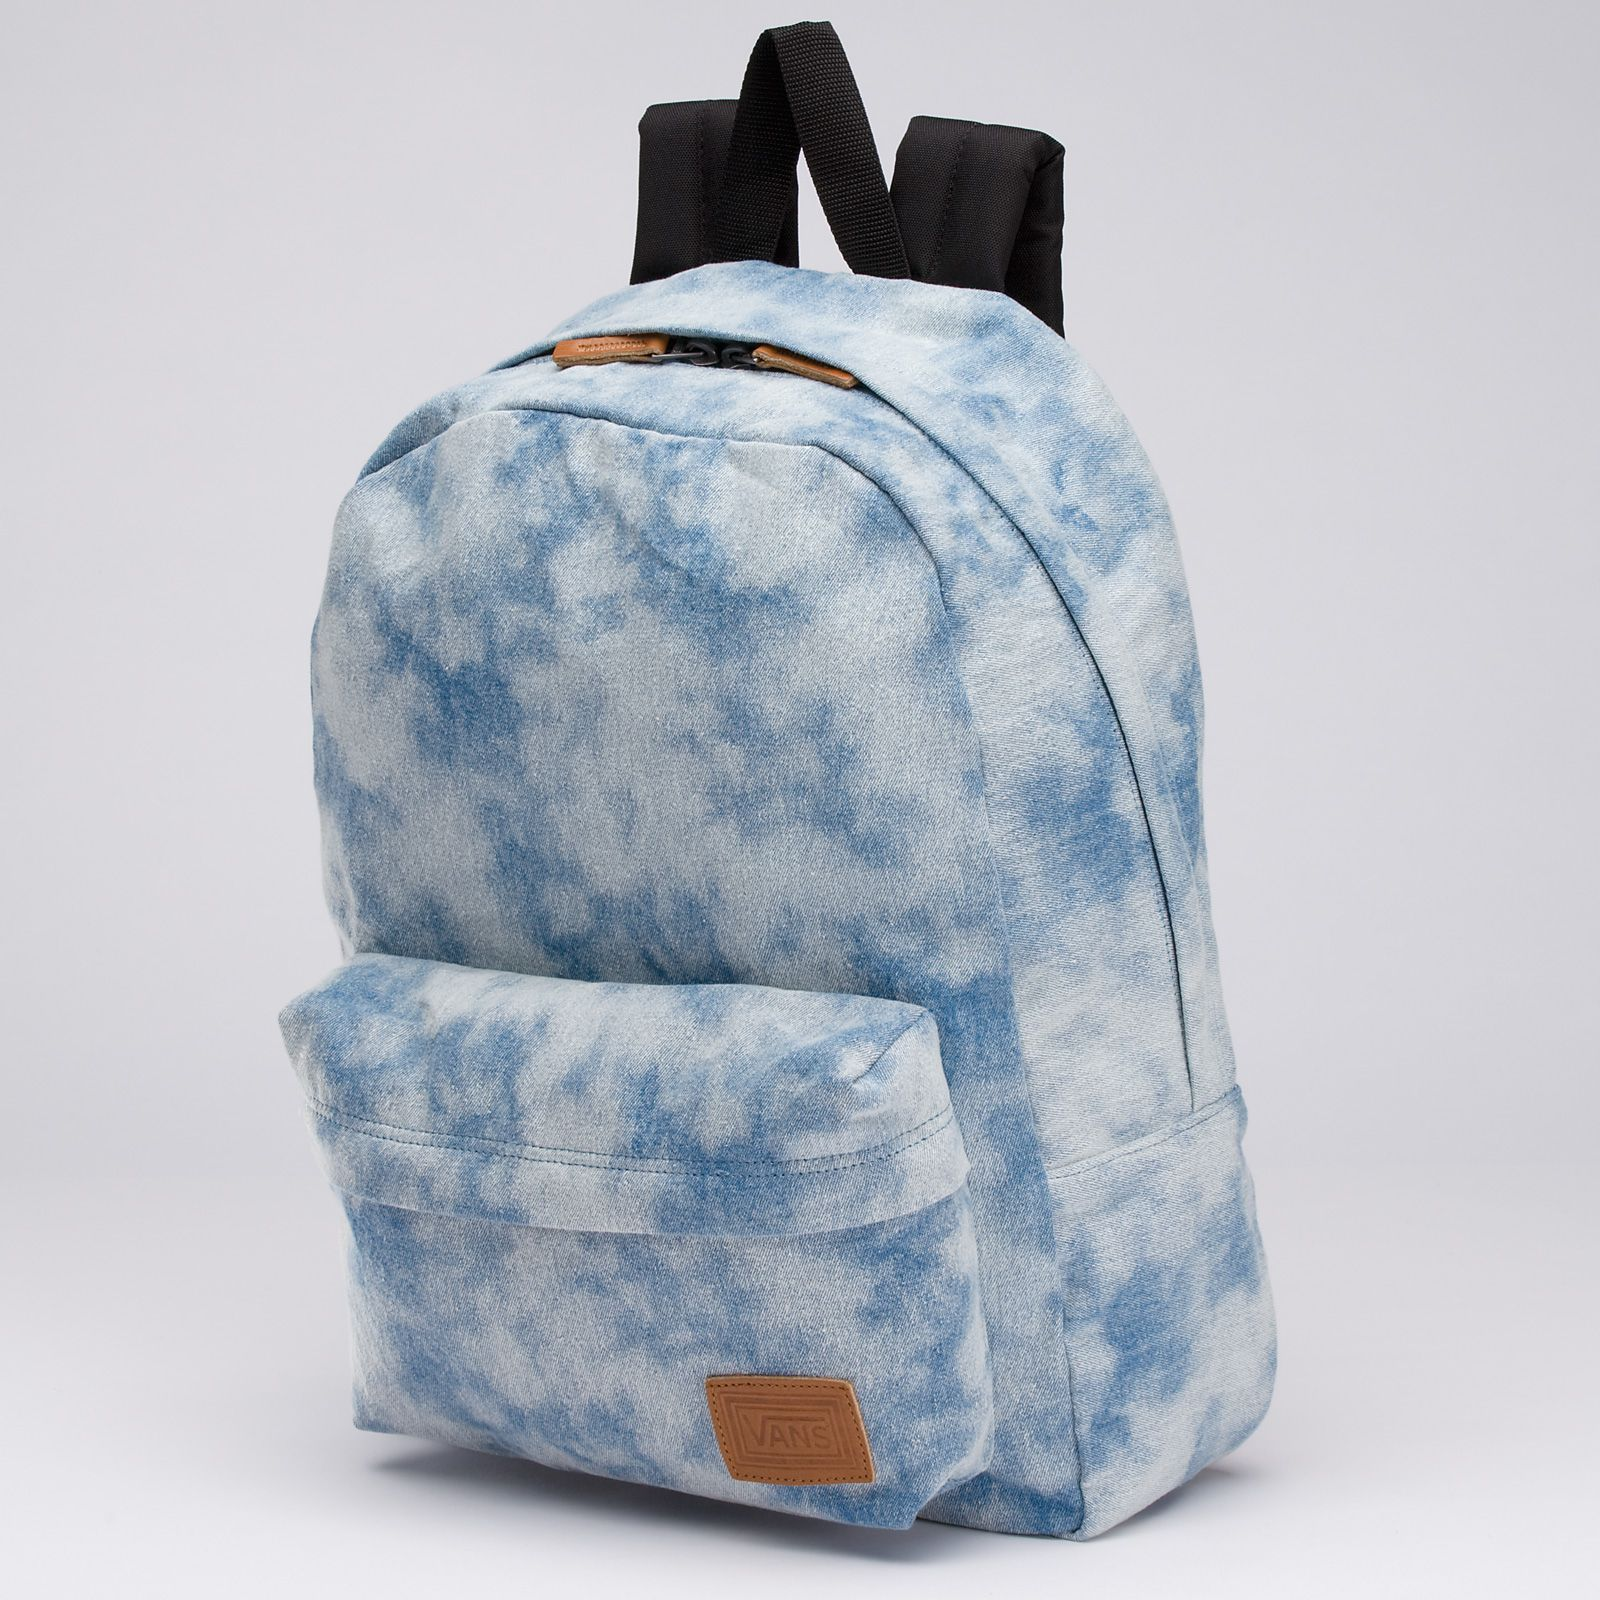 Reconocimiento síndrome Municipios  motxilla vans 38 | Vans backpack, Bags, Cute mini backpacks